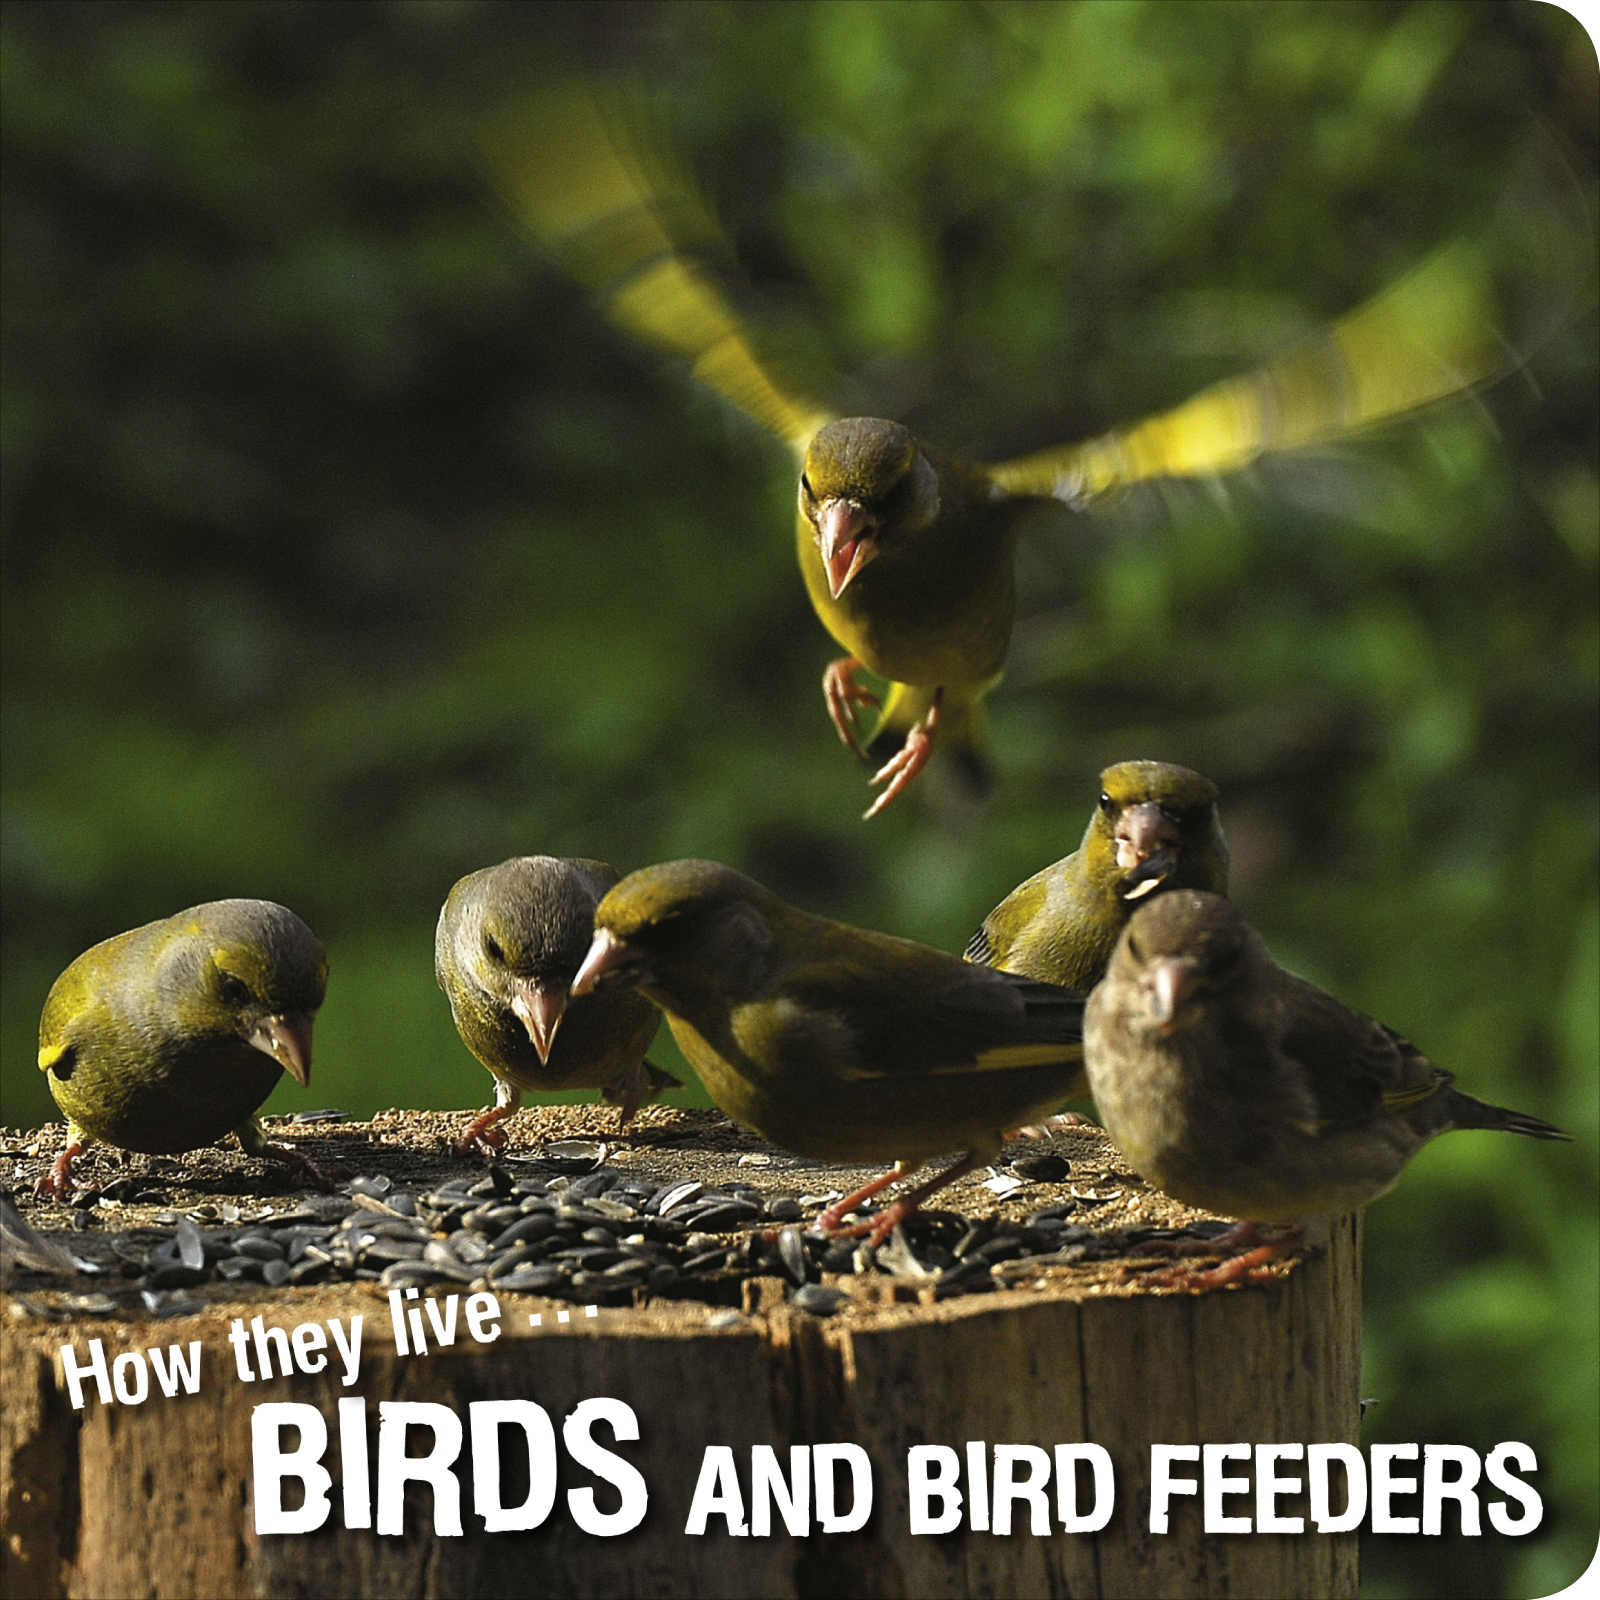 How they live... Birds, Learn All There Is to Know About These Animals!